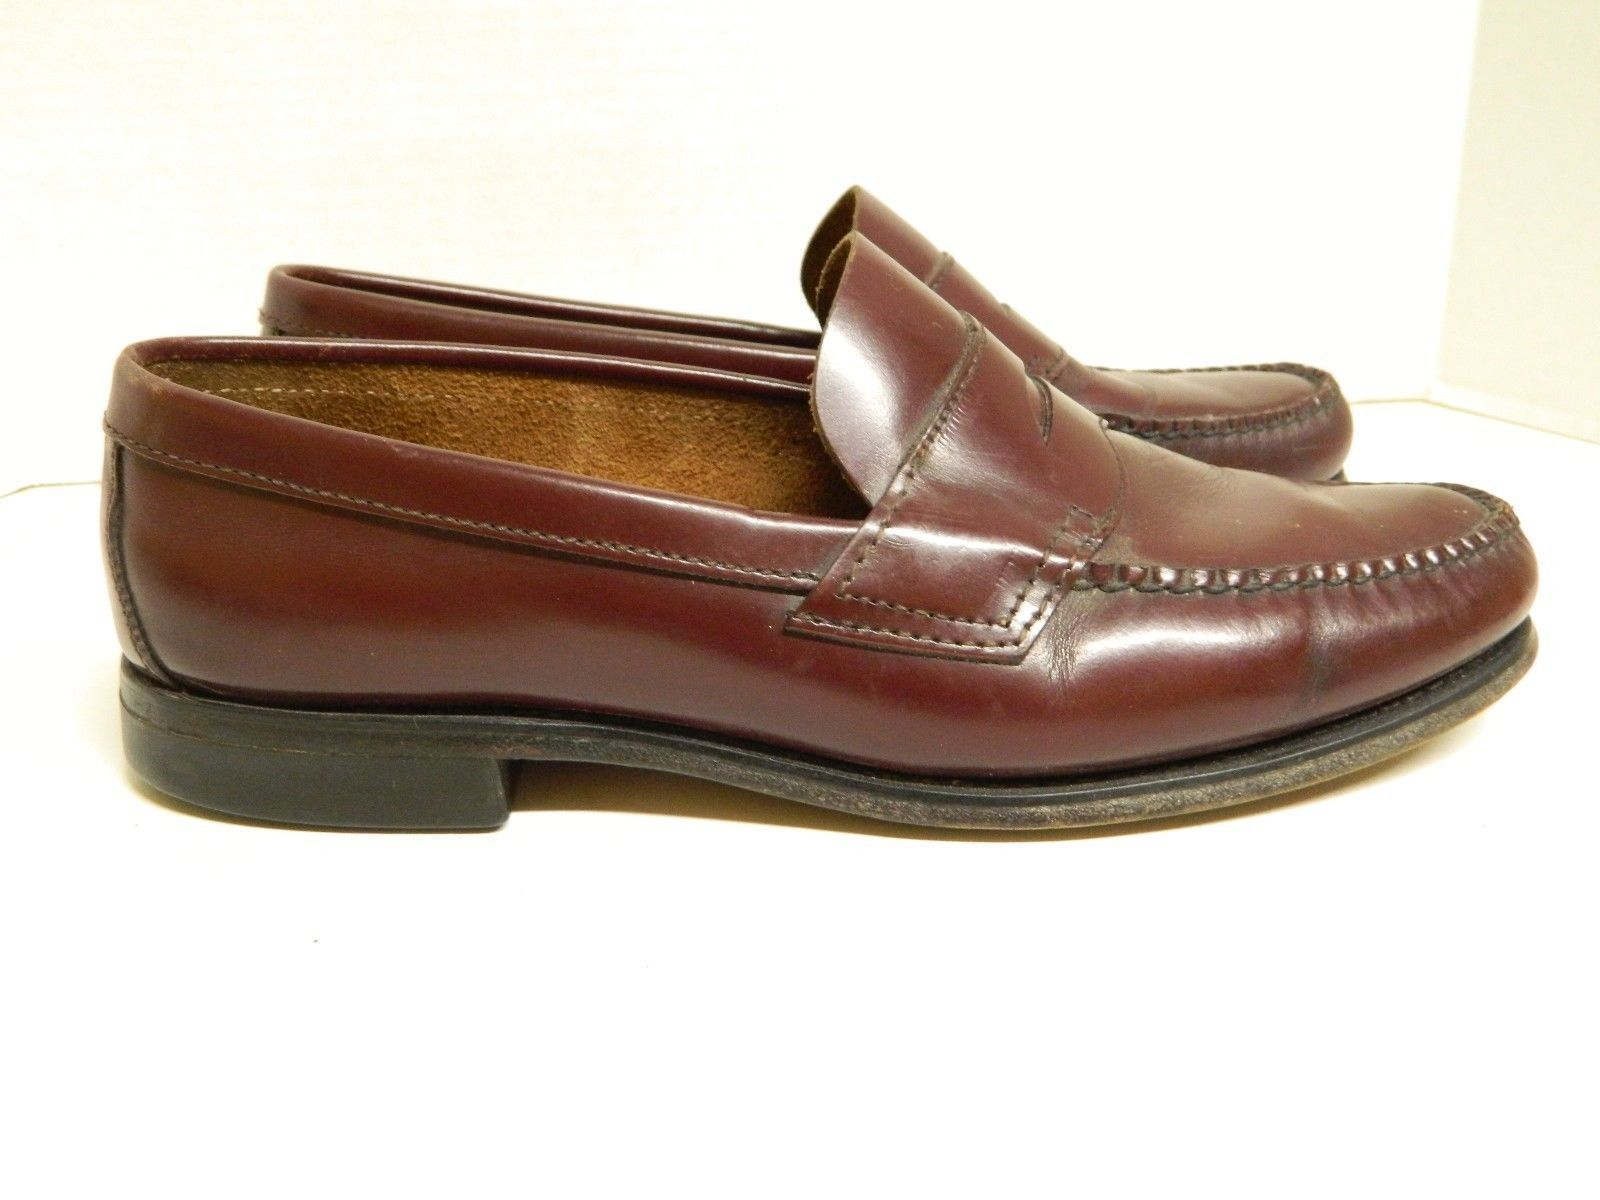 b6f0c34b939 ... Vintage LL Bean Men s Classic Penny Loafers Size 11D Cordovan Made in  ...